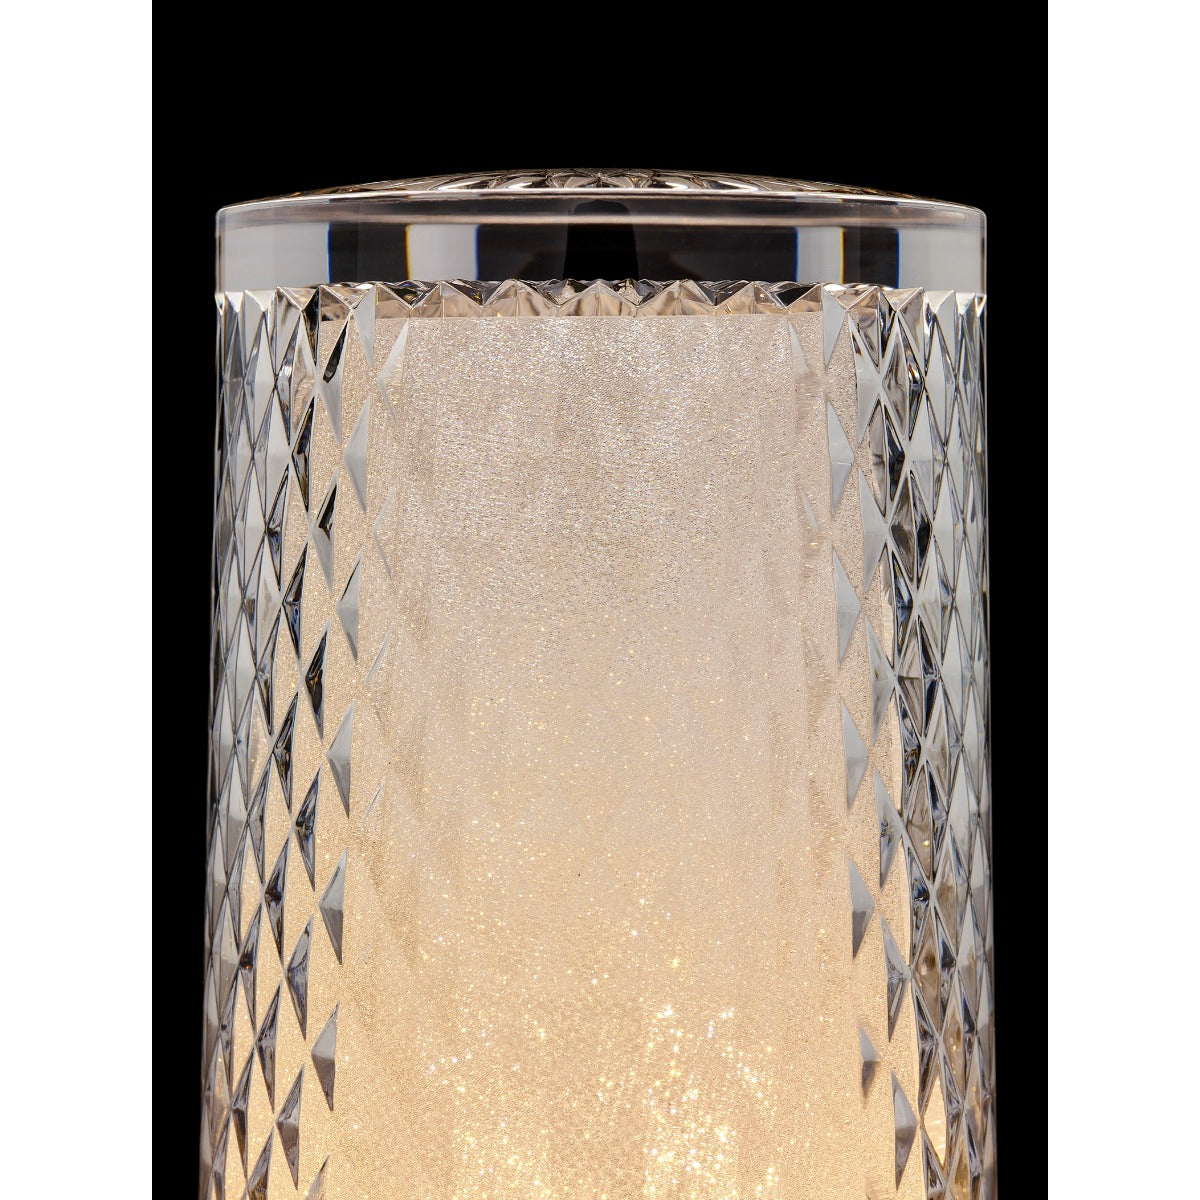 venetian glitter table light